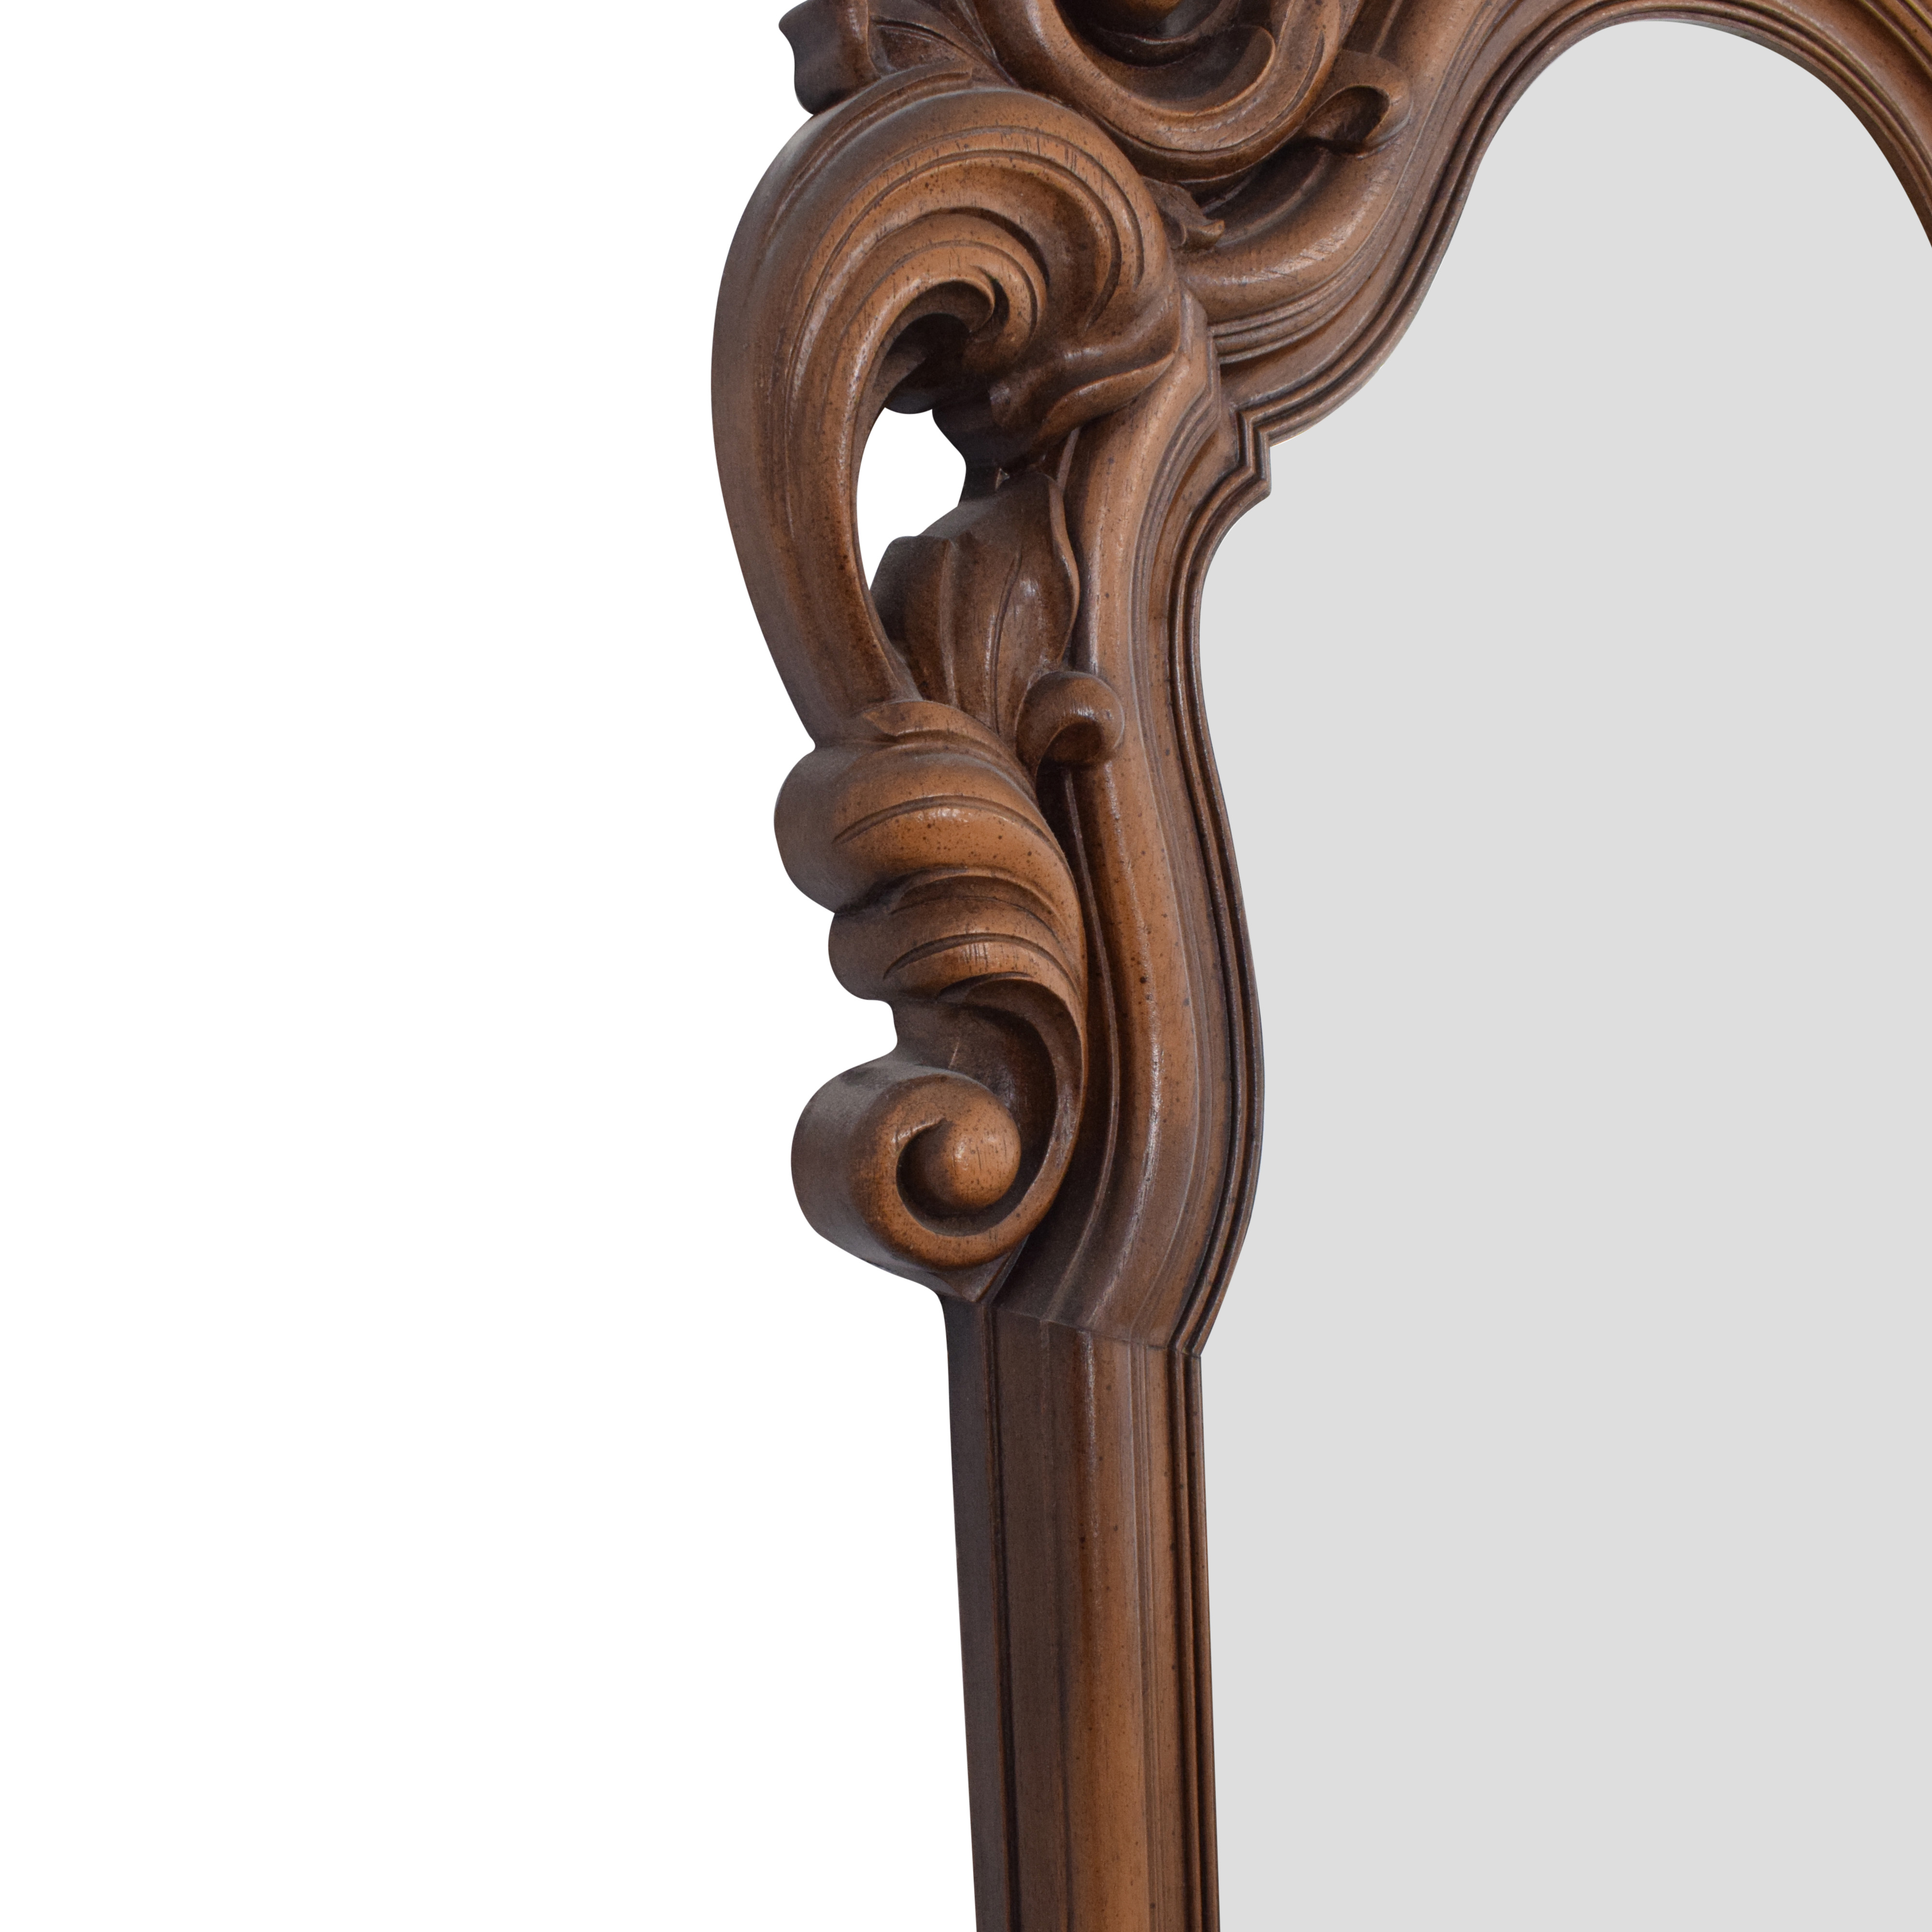 Broyhill Furniture Broyhill Venetian Style Accent Mirror nj